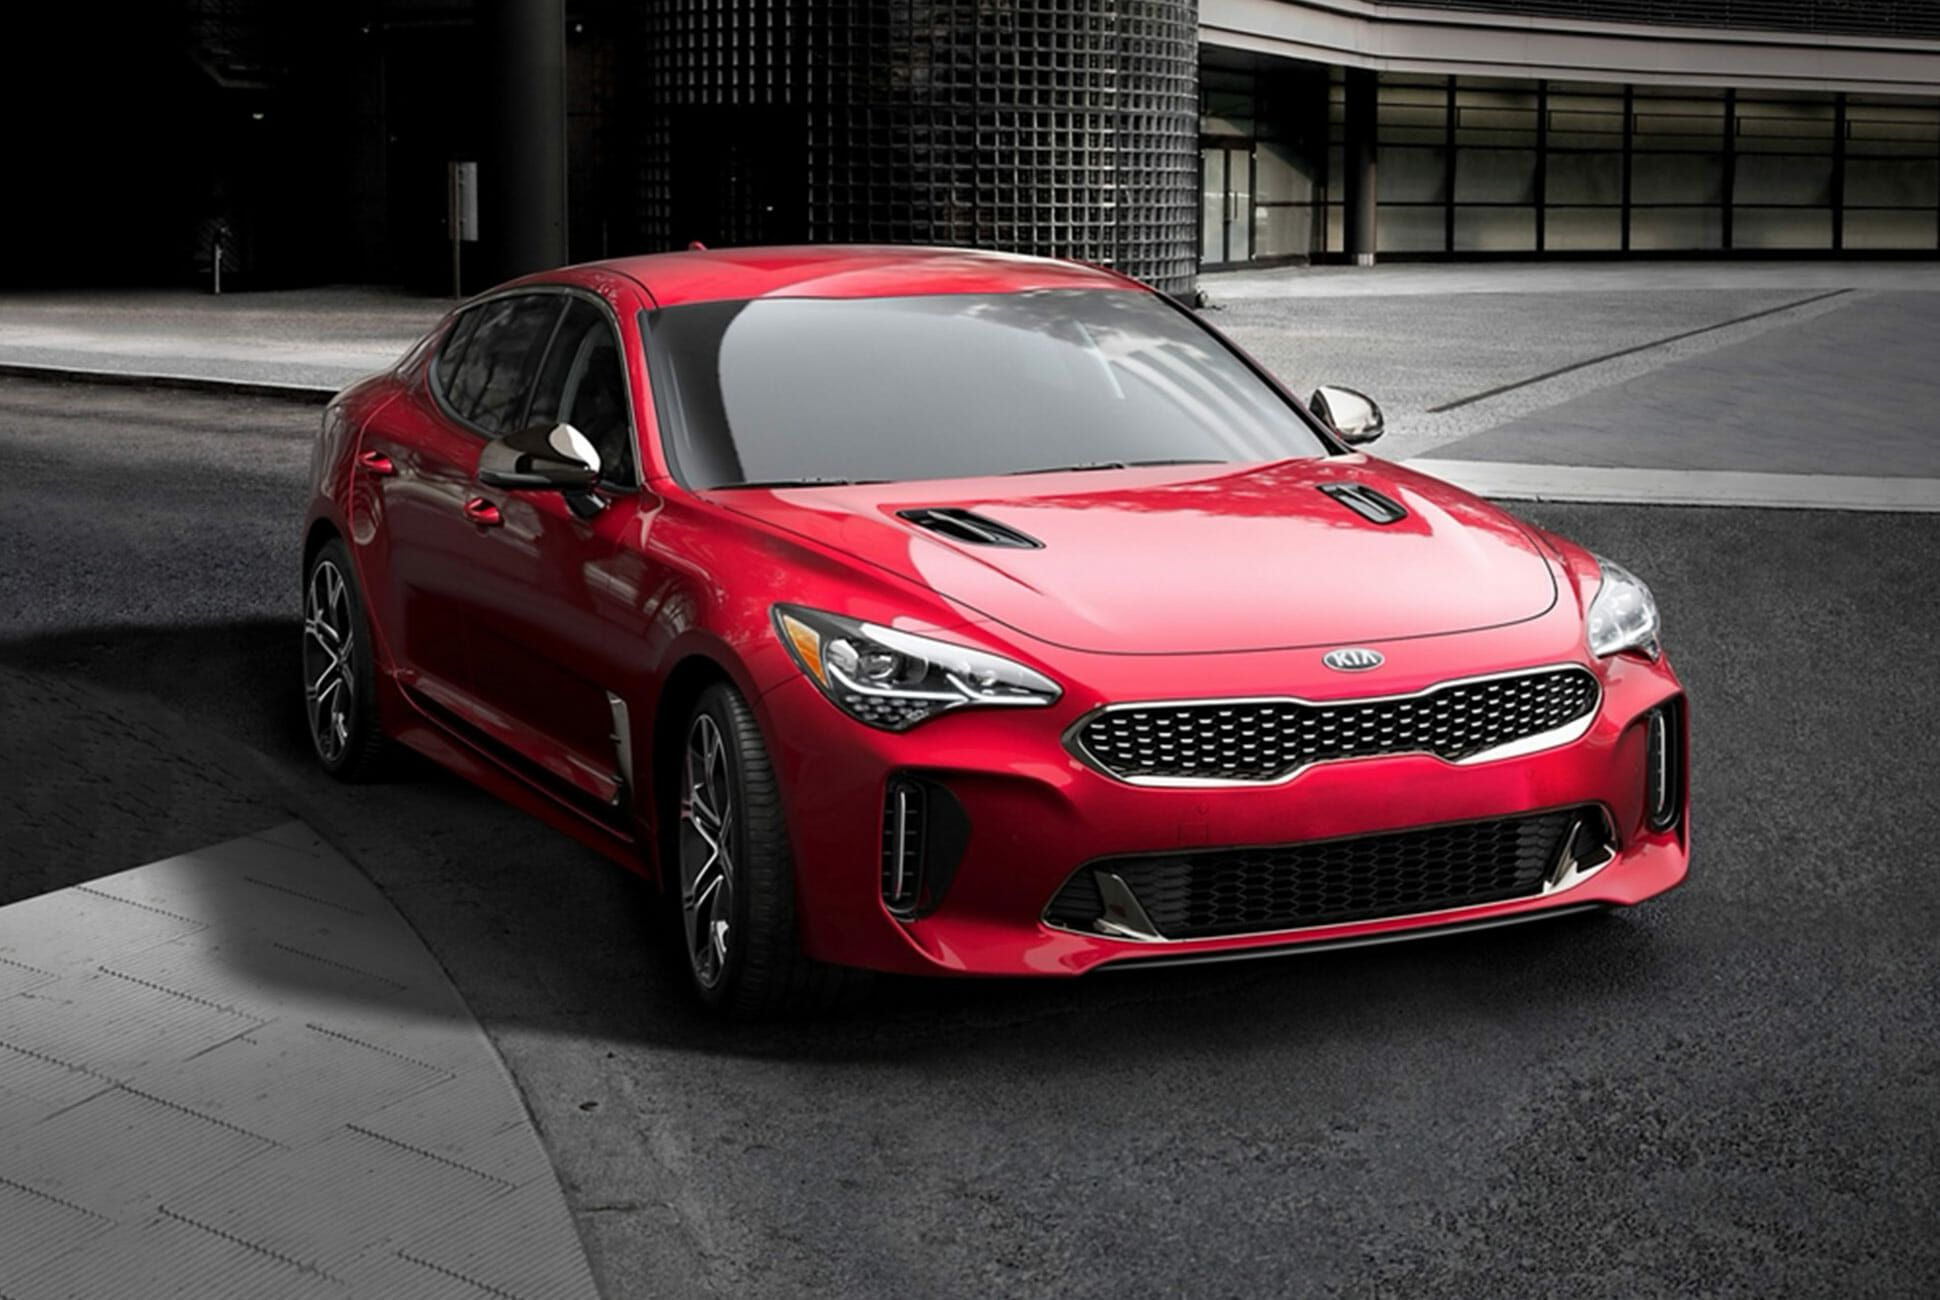 2020 kia stinger 2 0t review  everything but the horsepower  u2022 gear patrol